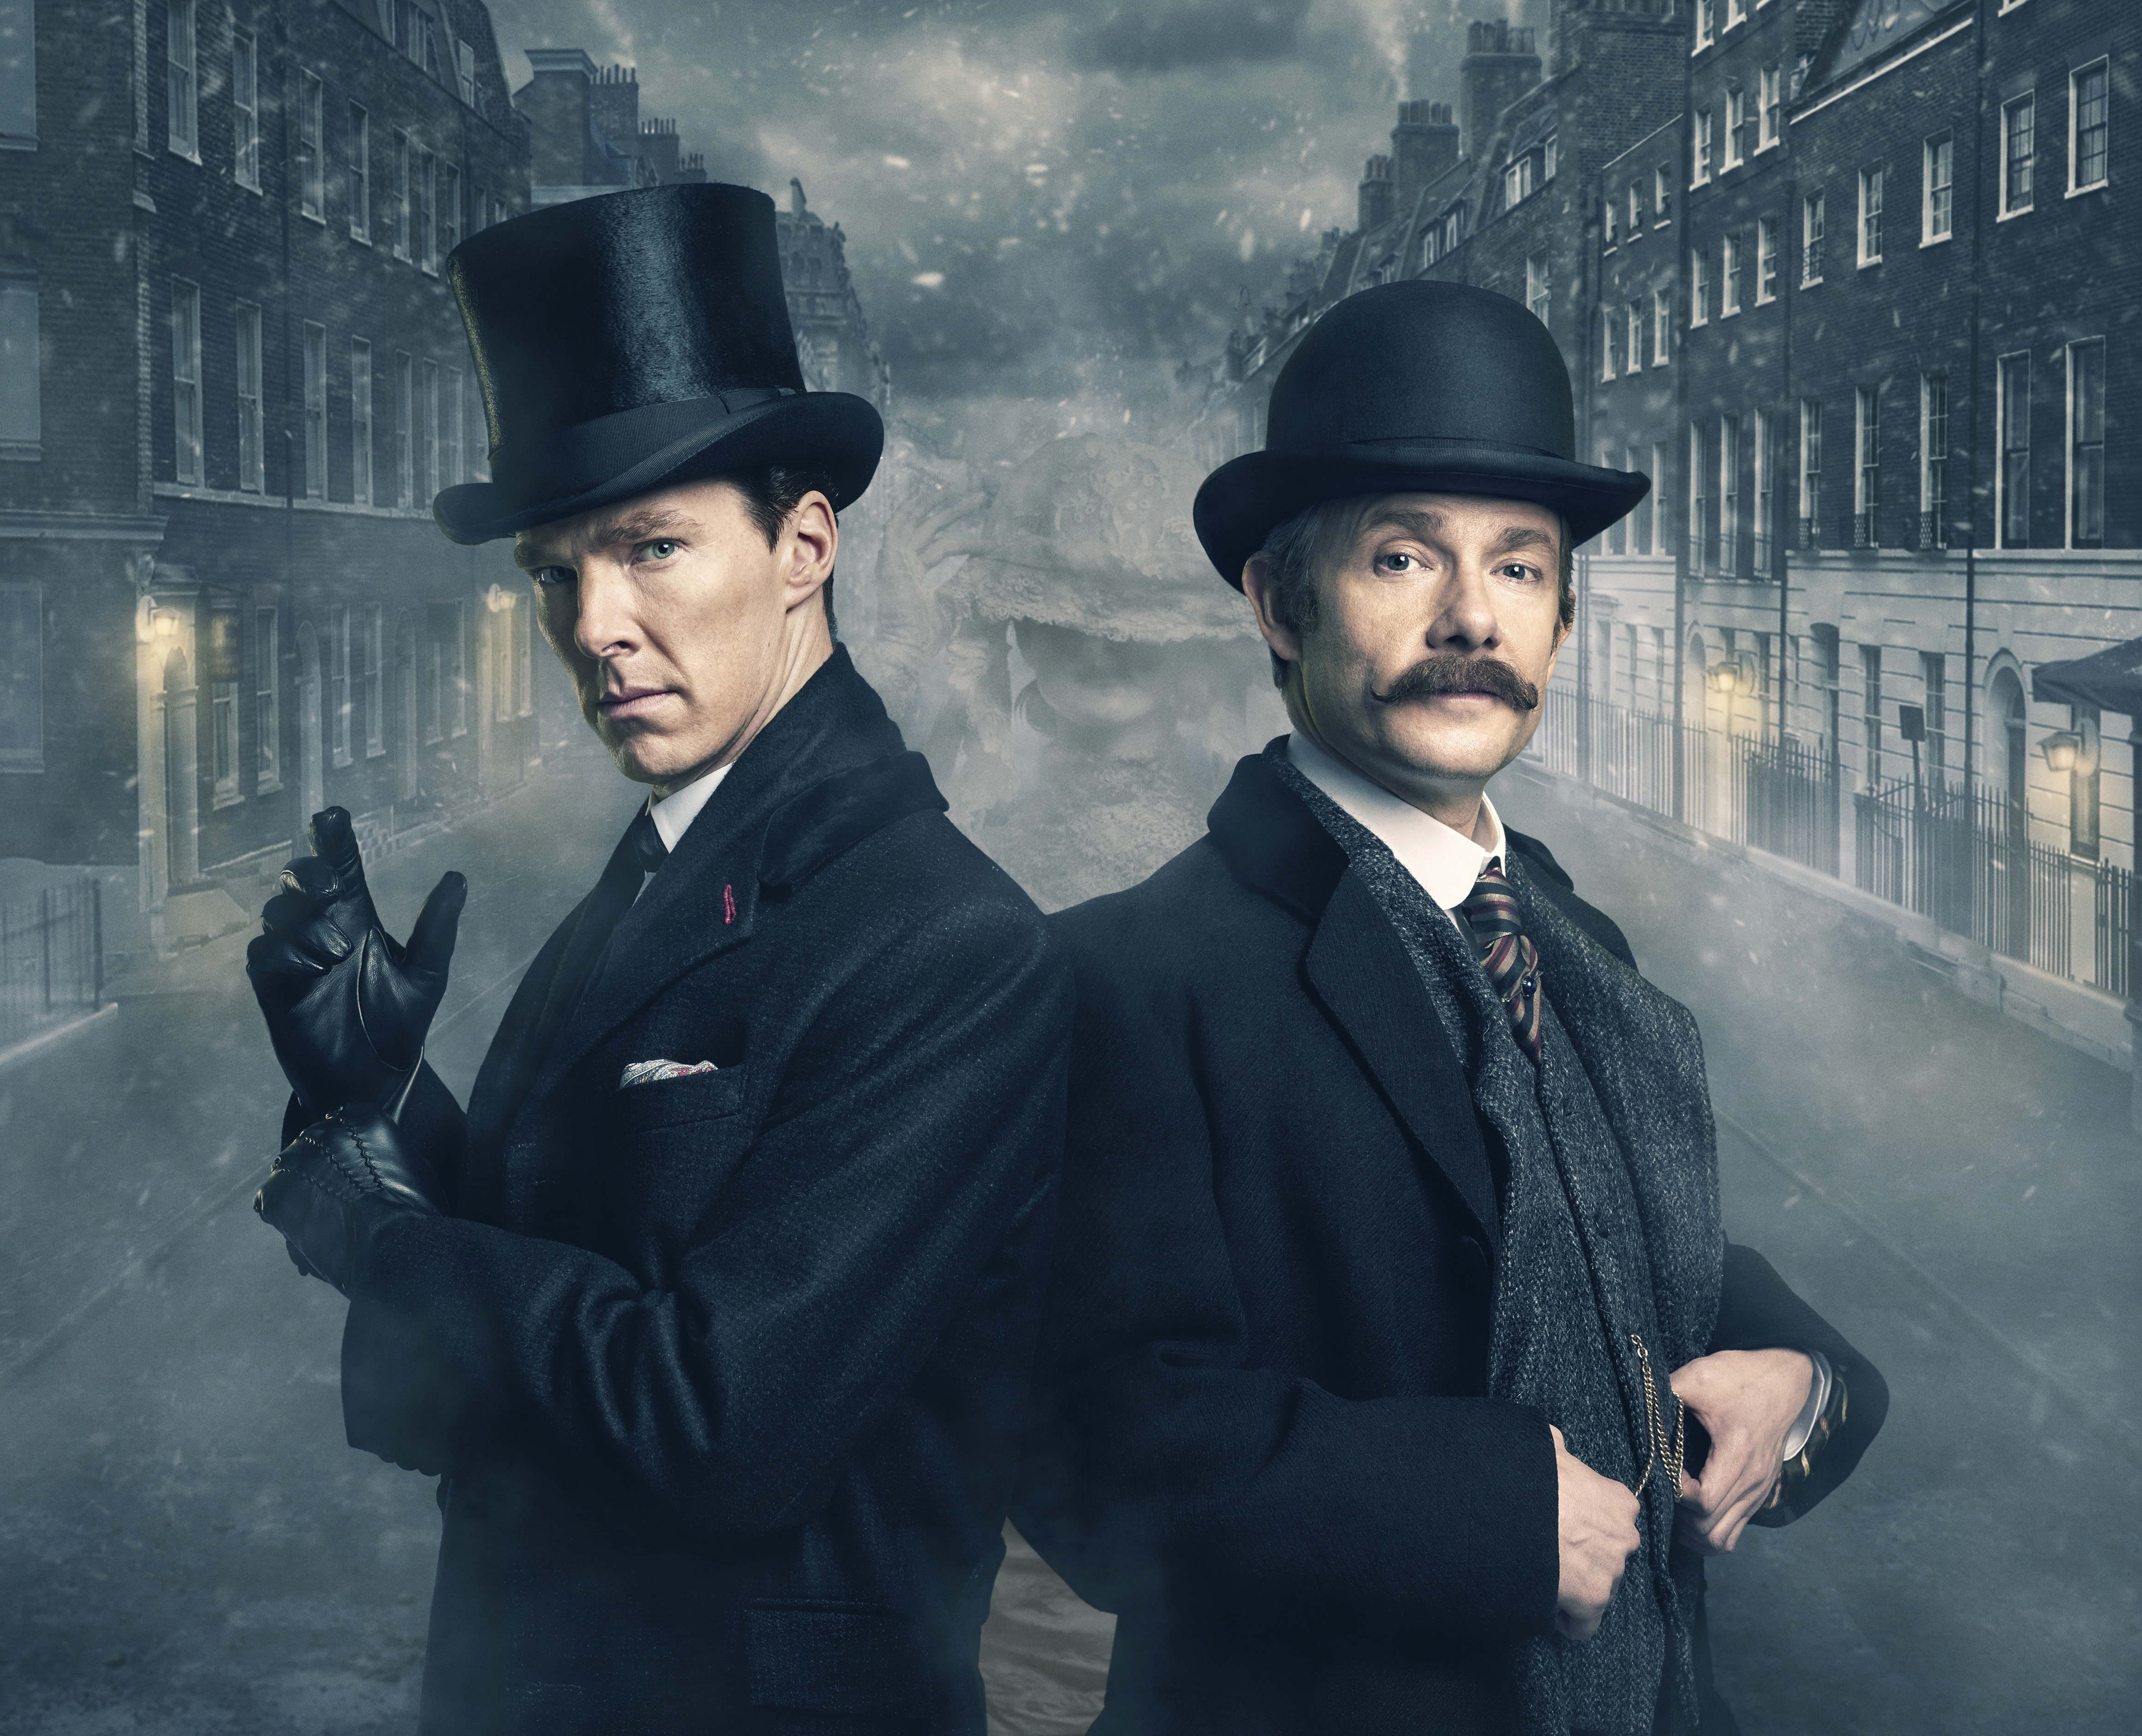 BBC's New Year's Day Sherlock special filmed in Bristol and The